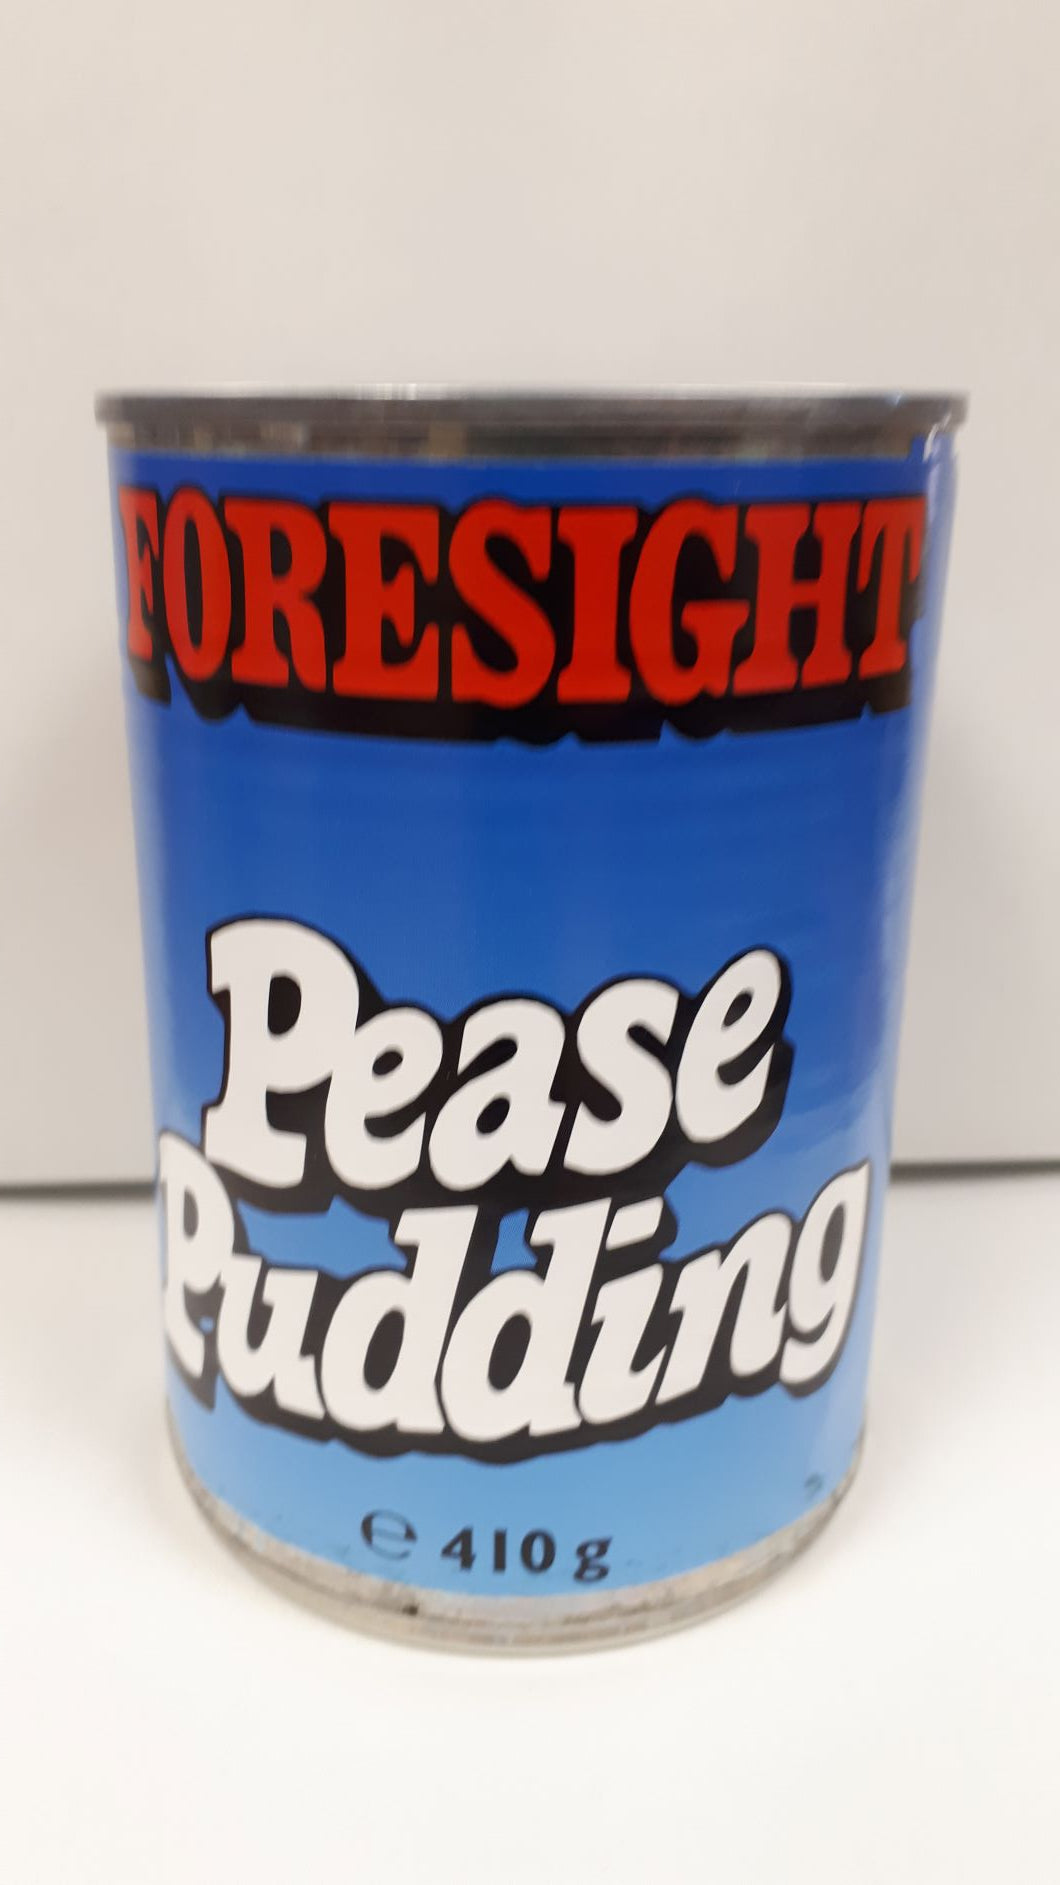 Foresight Pease Pudding